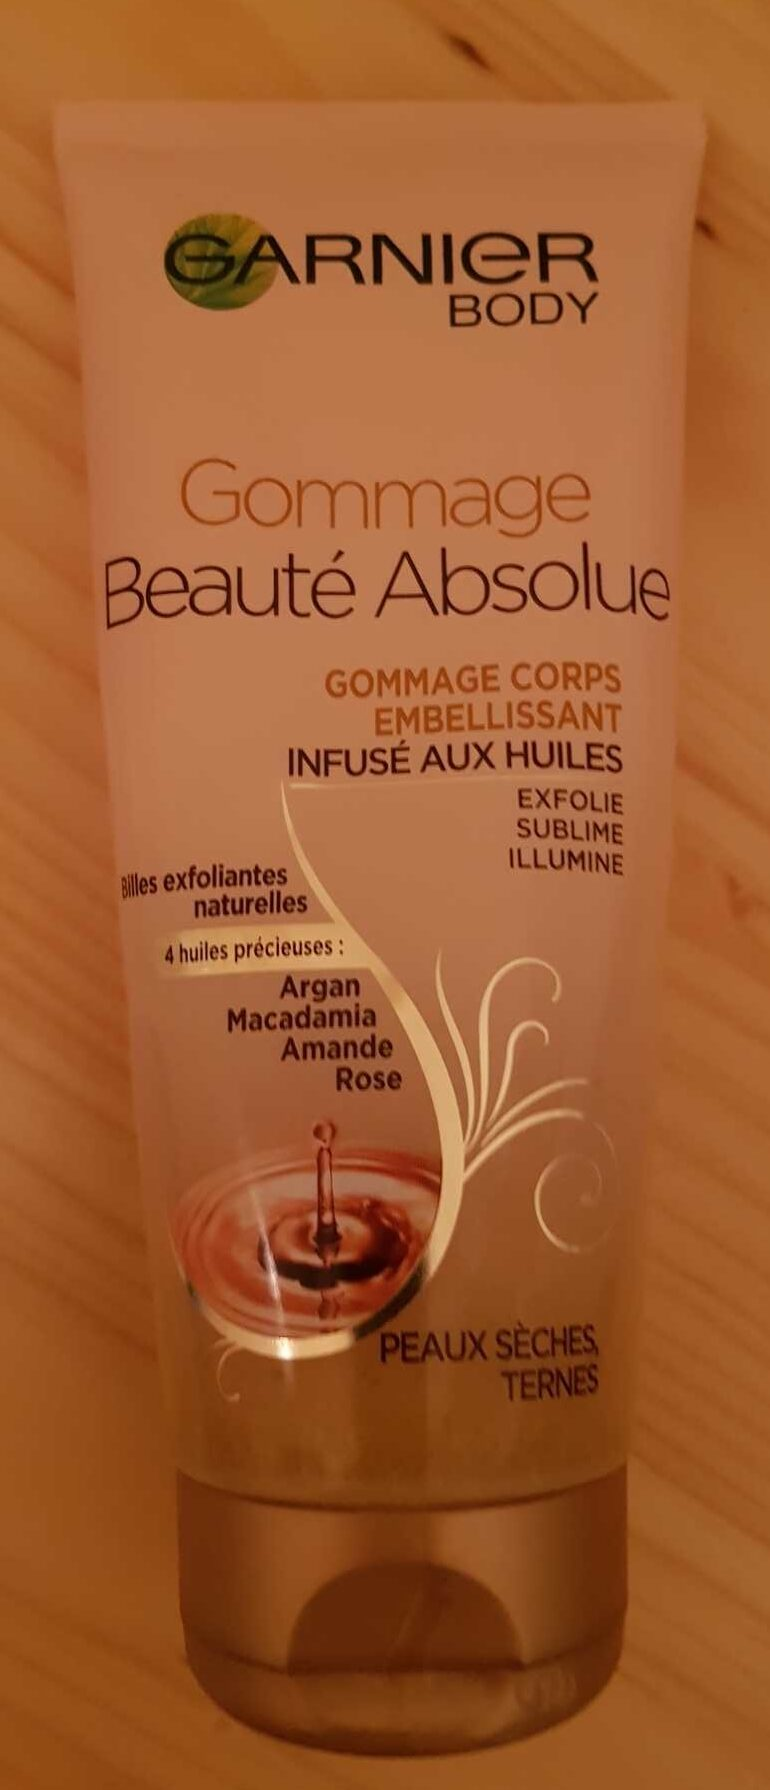 Gommage beauté absolue - Product